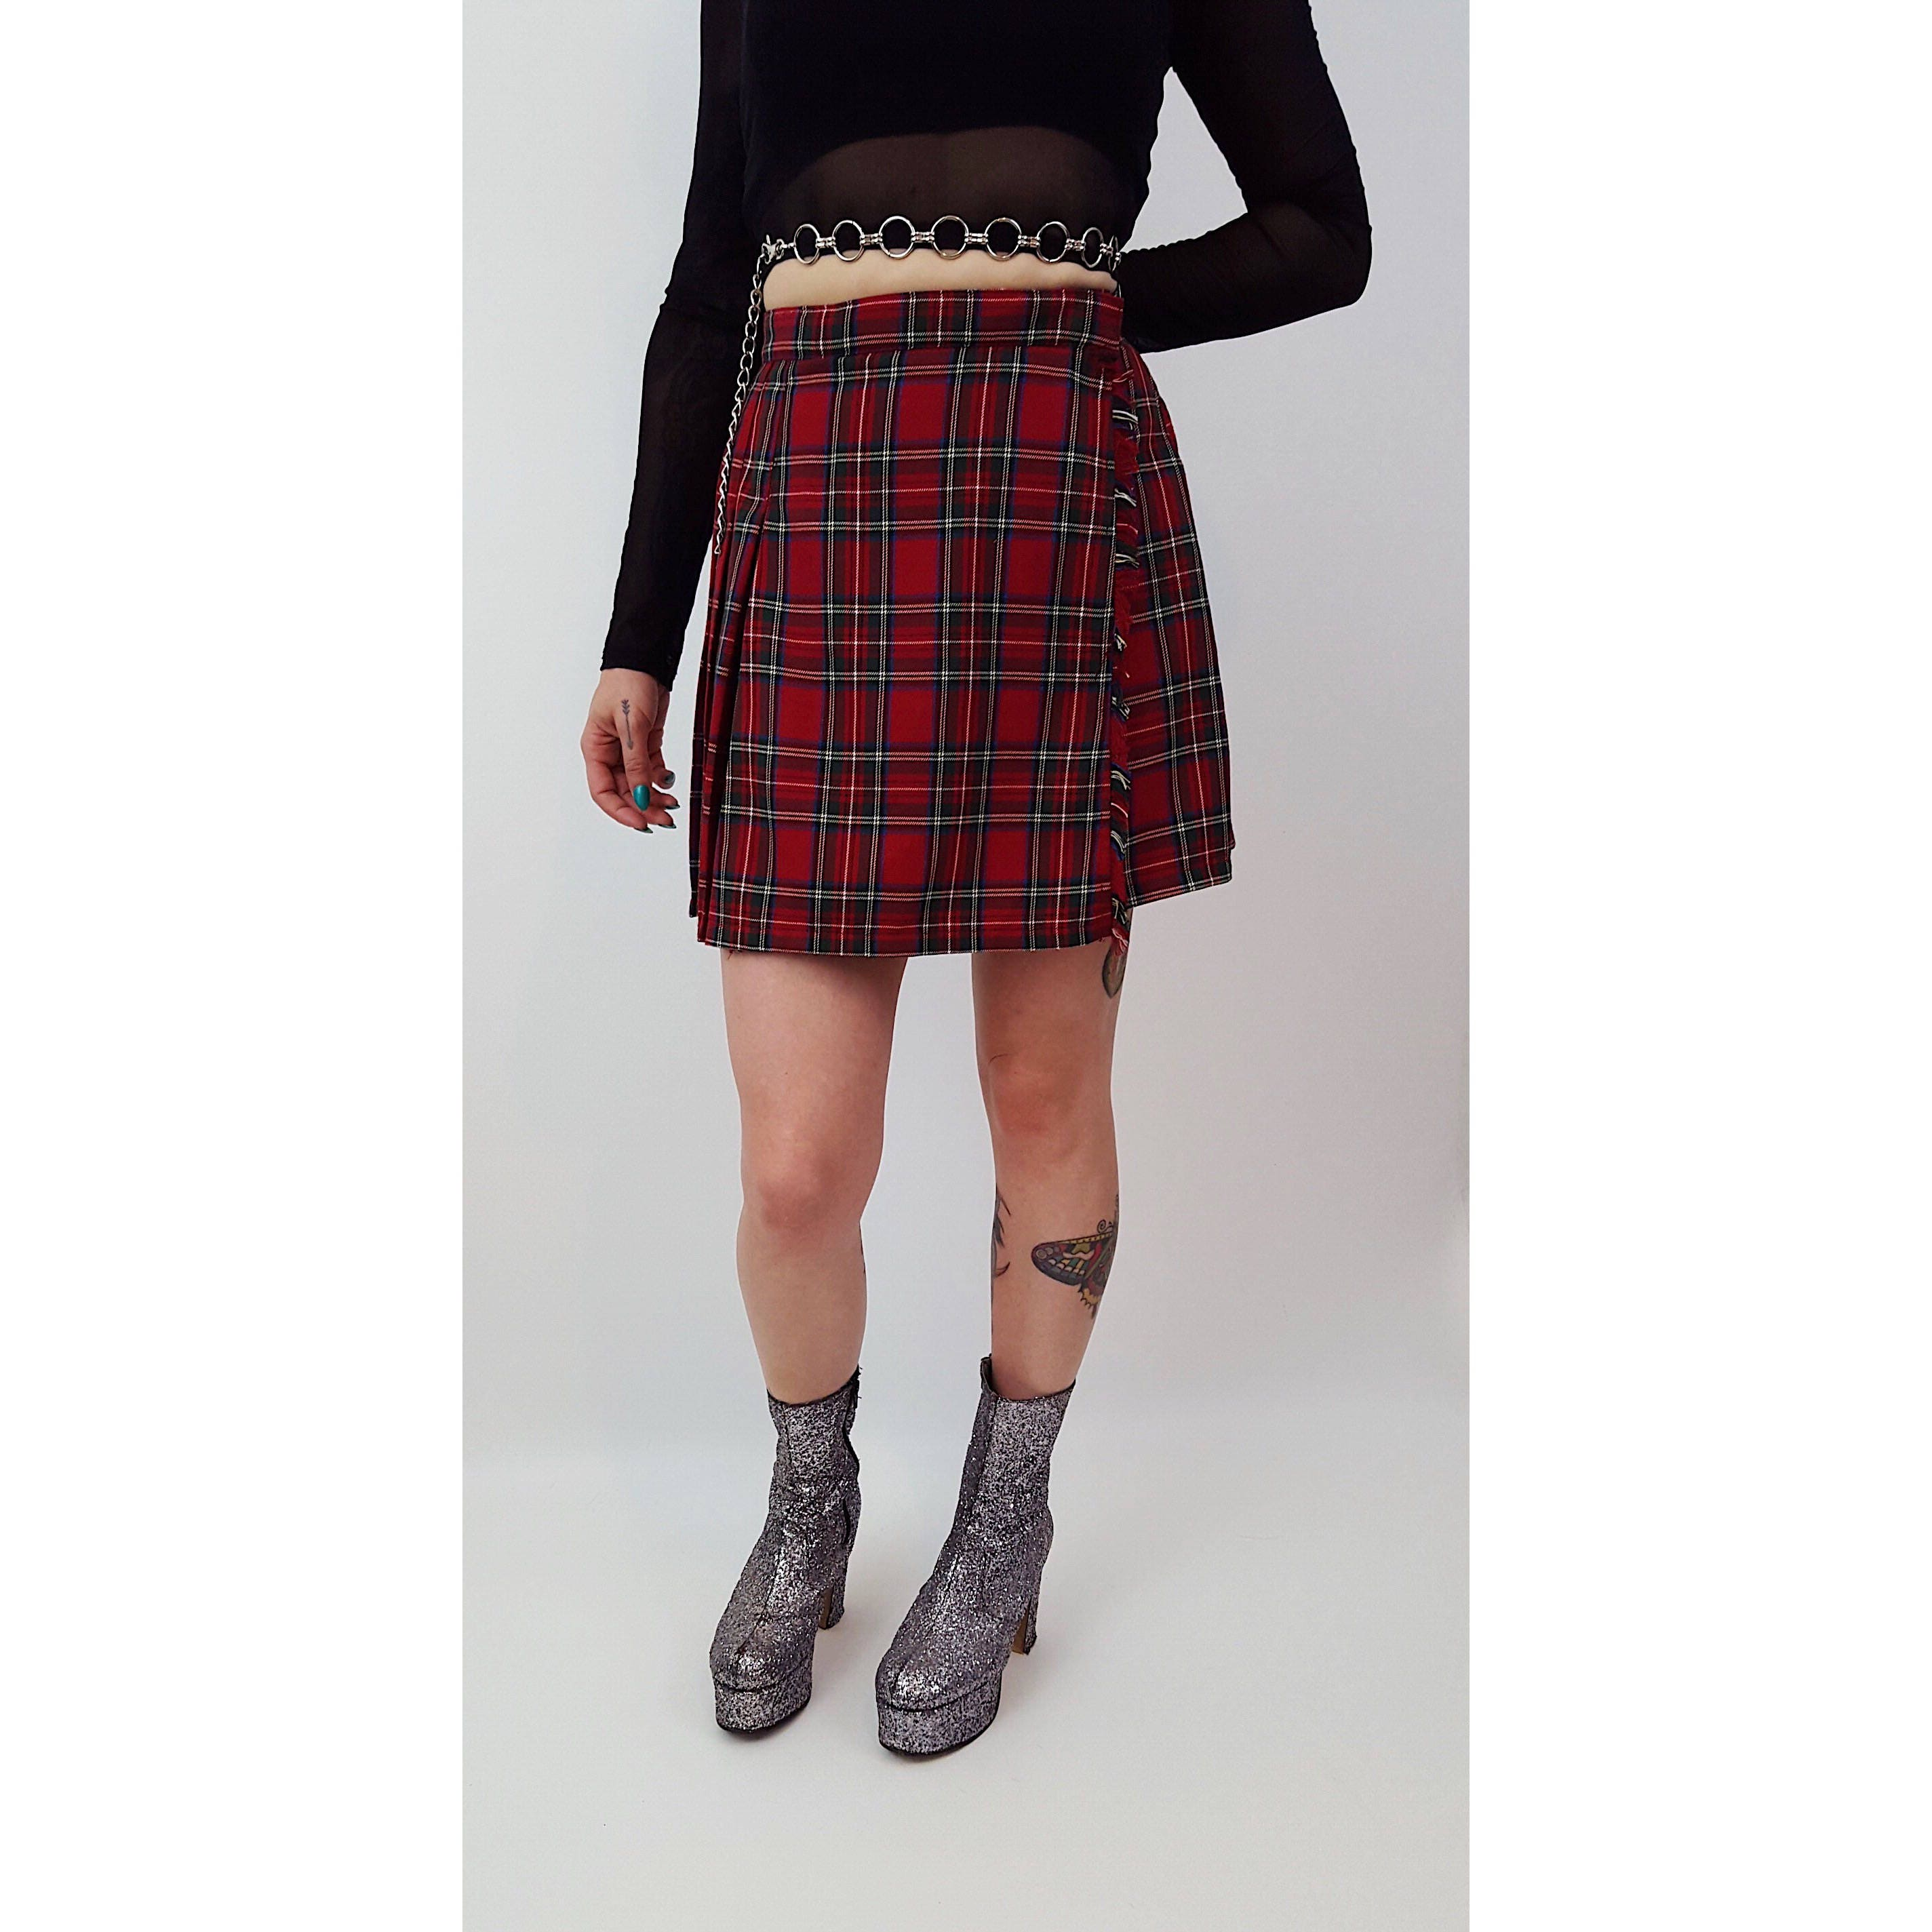 0e00d52985 90's Red Plaid Mini Skirt Size 2 4 - Tartan High Waist Pleated Wrap ...